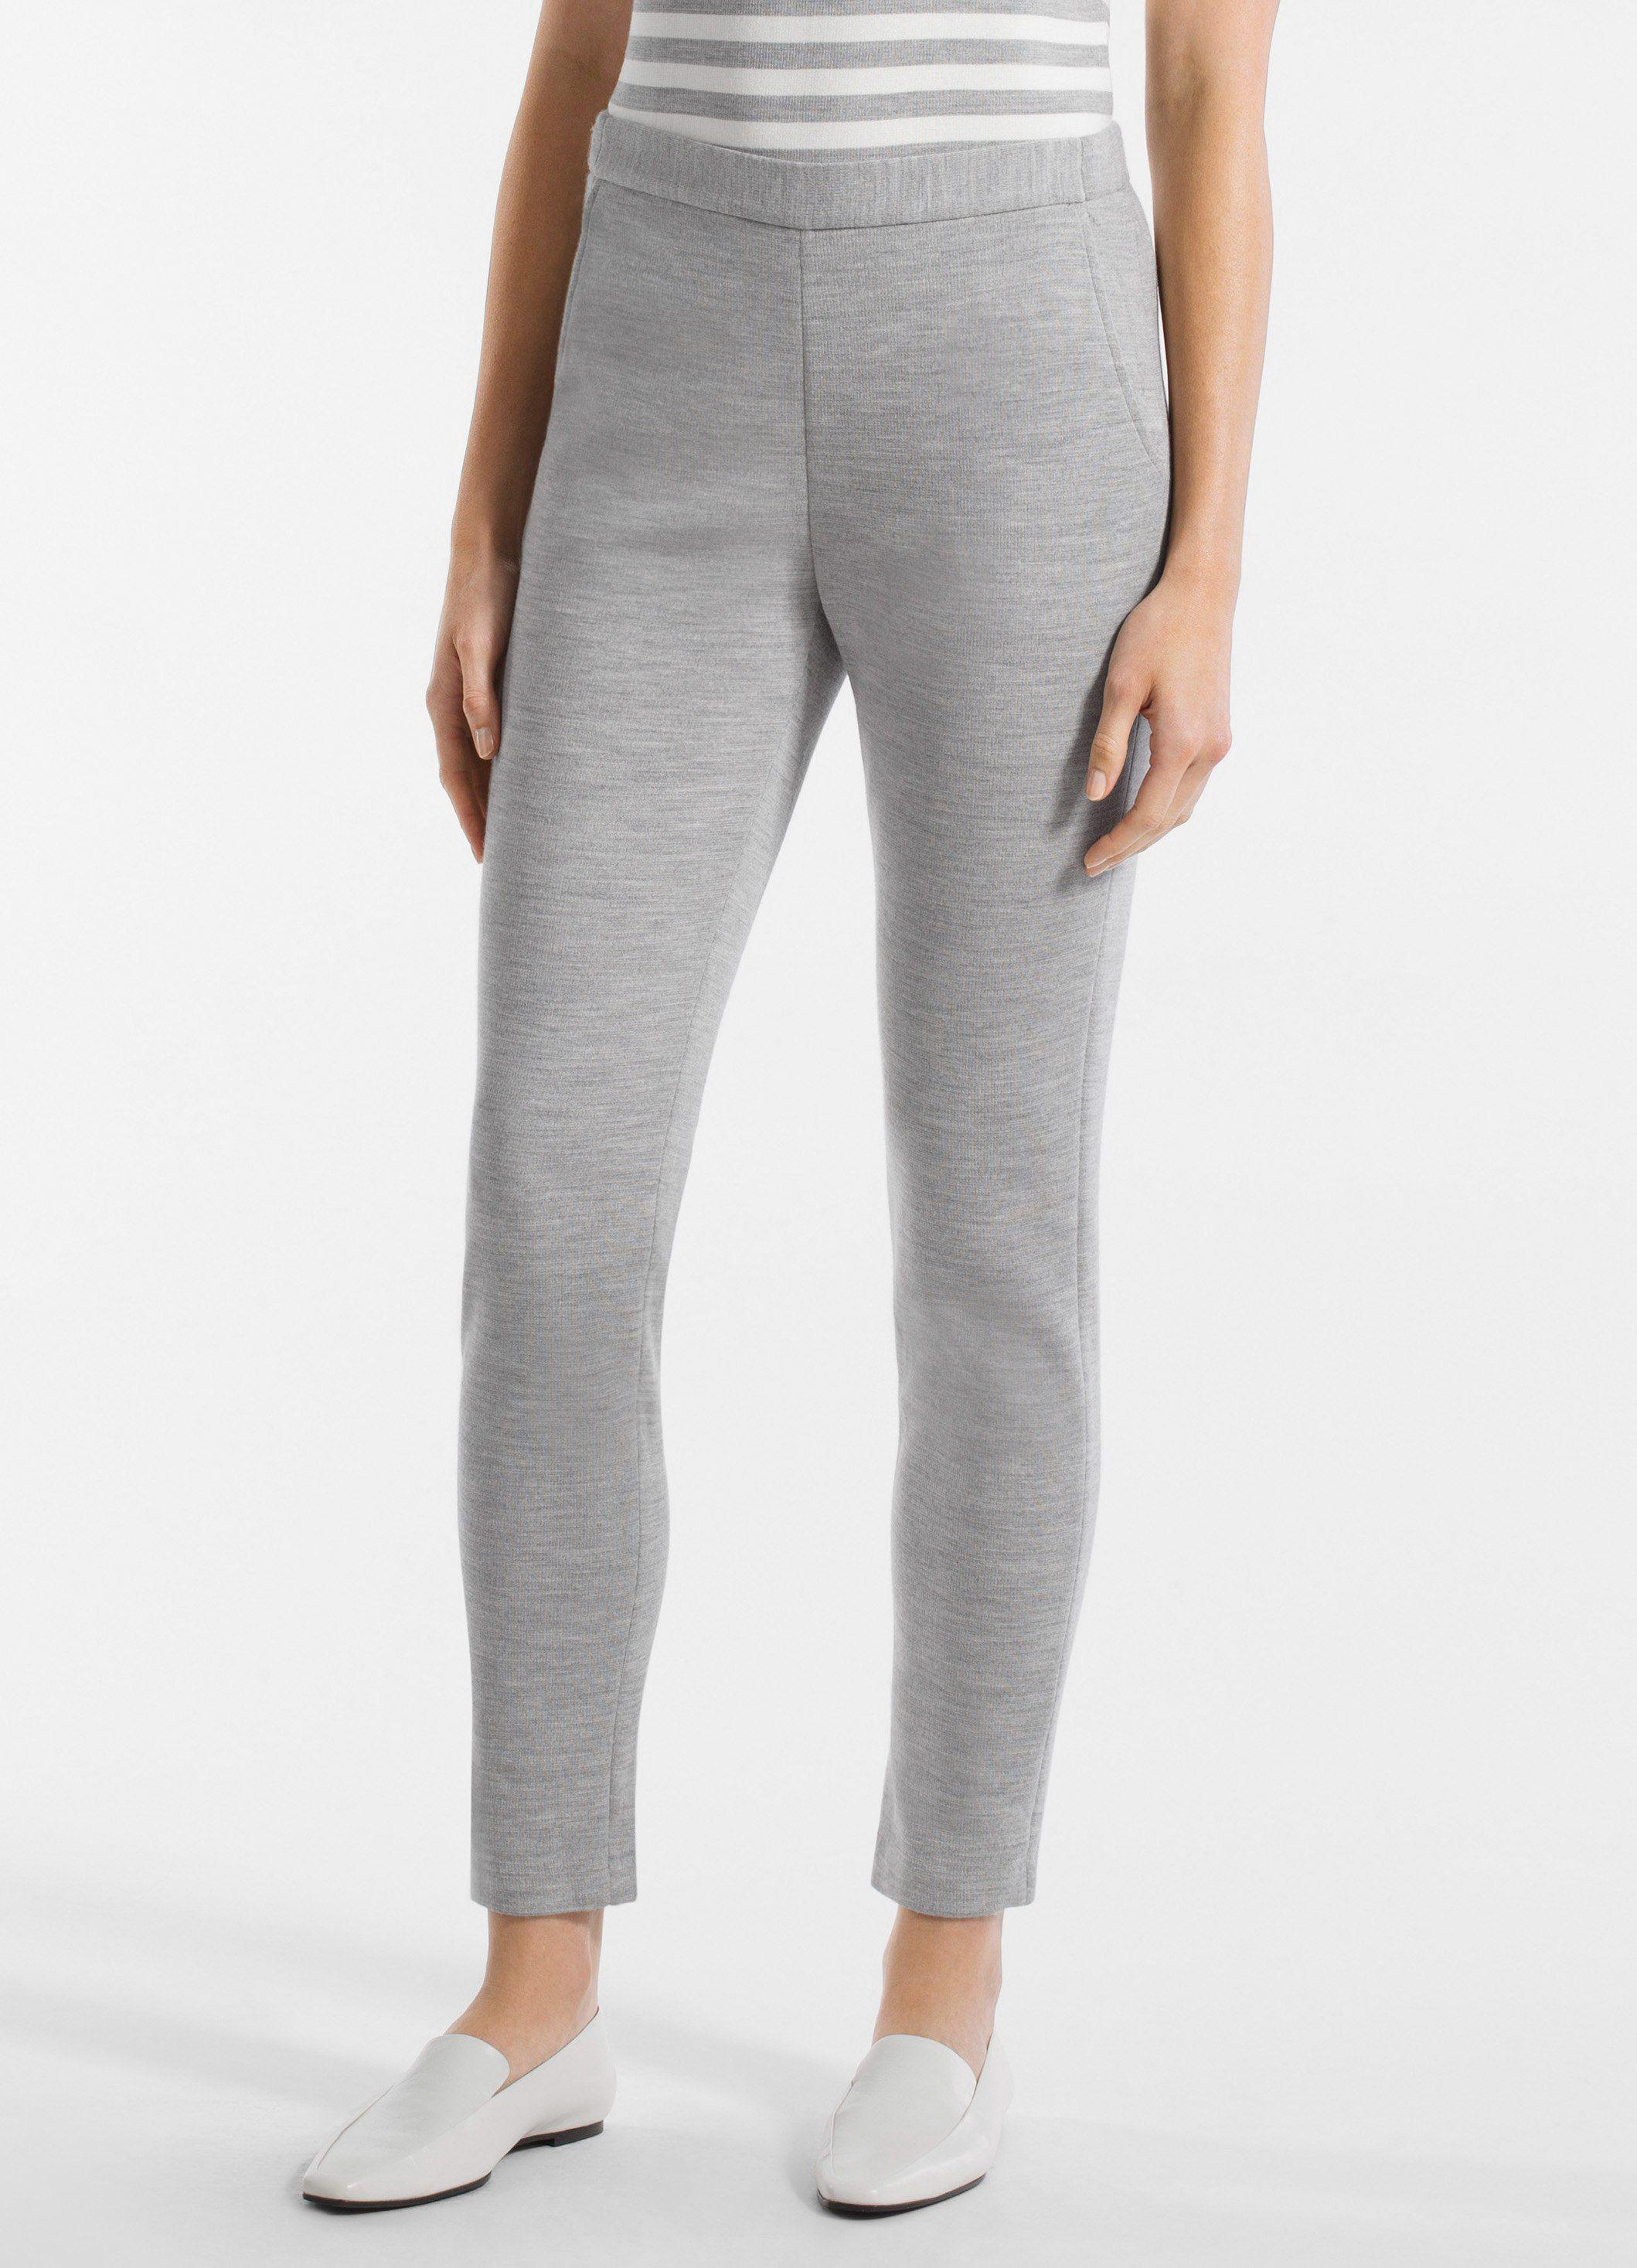 507f05ad866af Lyst - St. John Milano Knit Skinny Pants in Gray